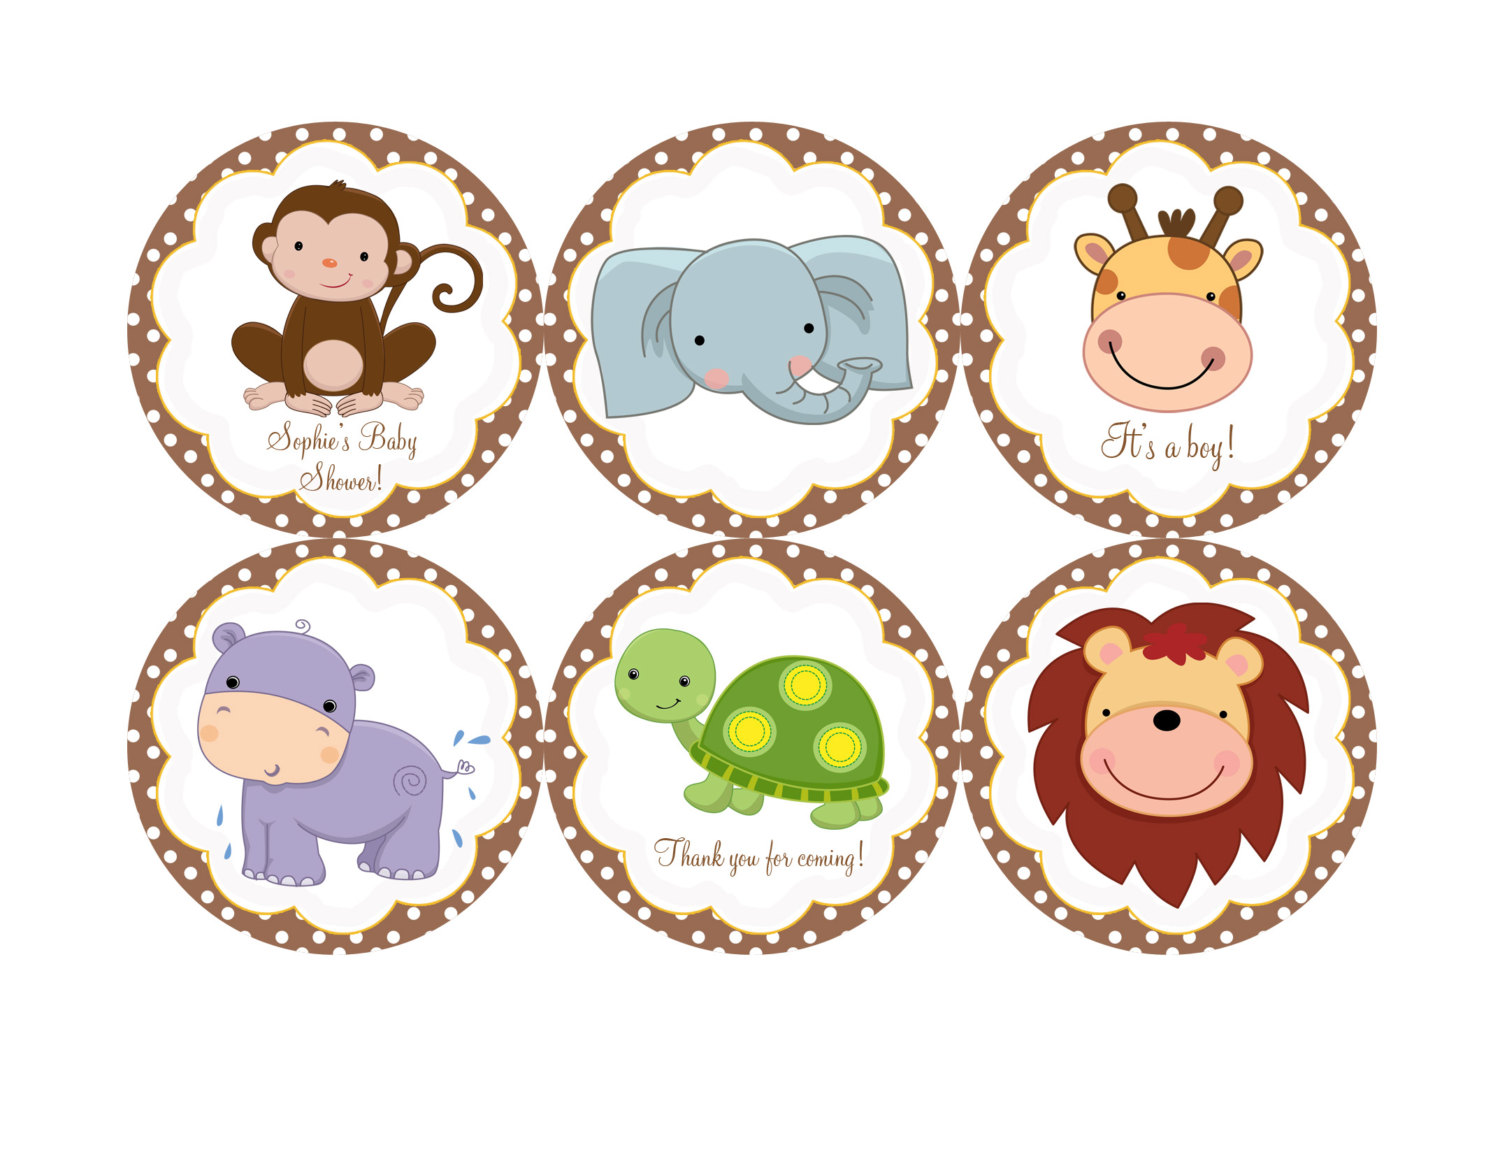 Free clipart for baby showers graphic free download Jungle Baby Shower Clipart - Clipart Kid graphic free download